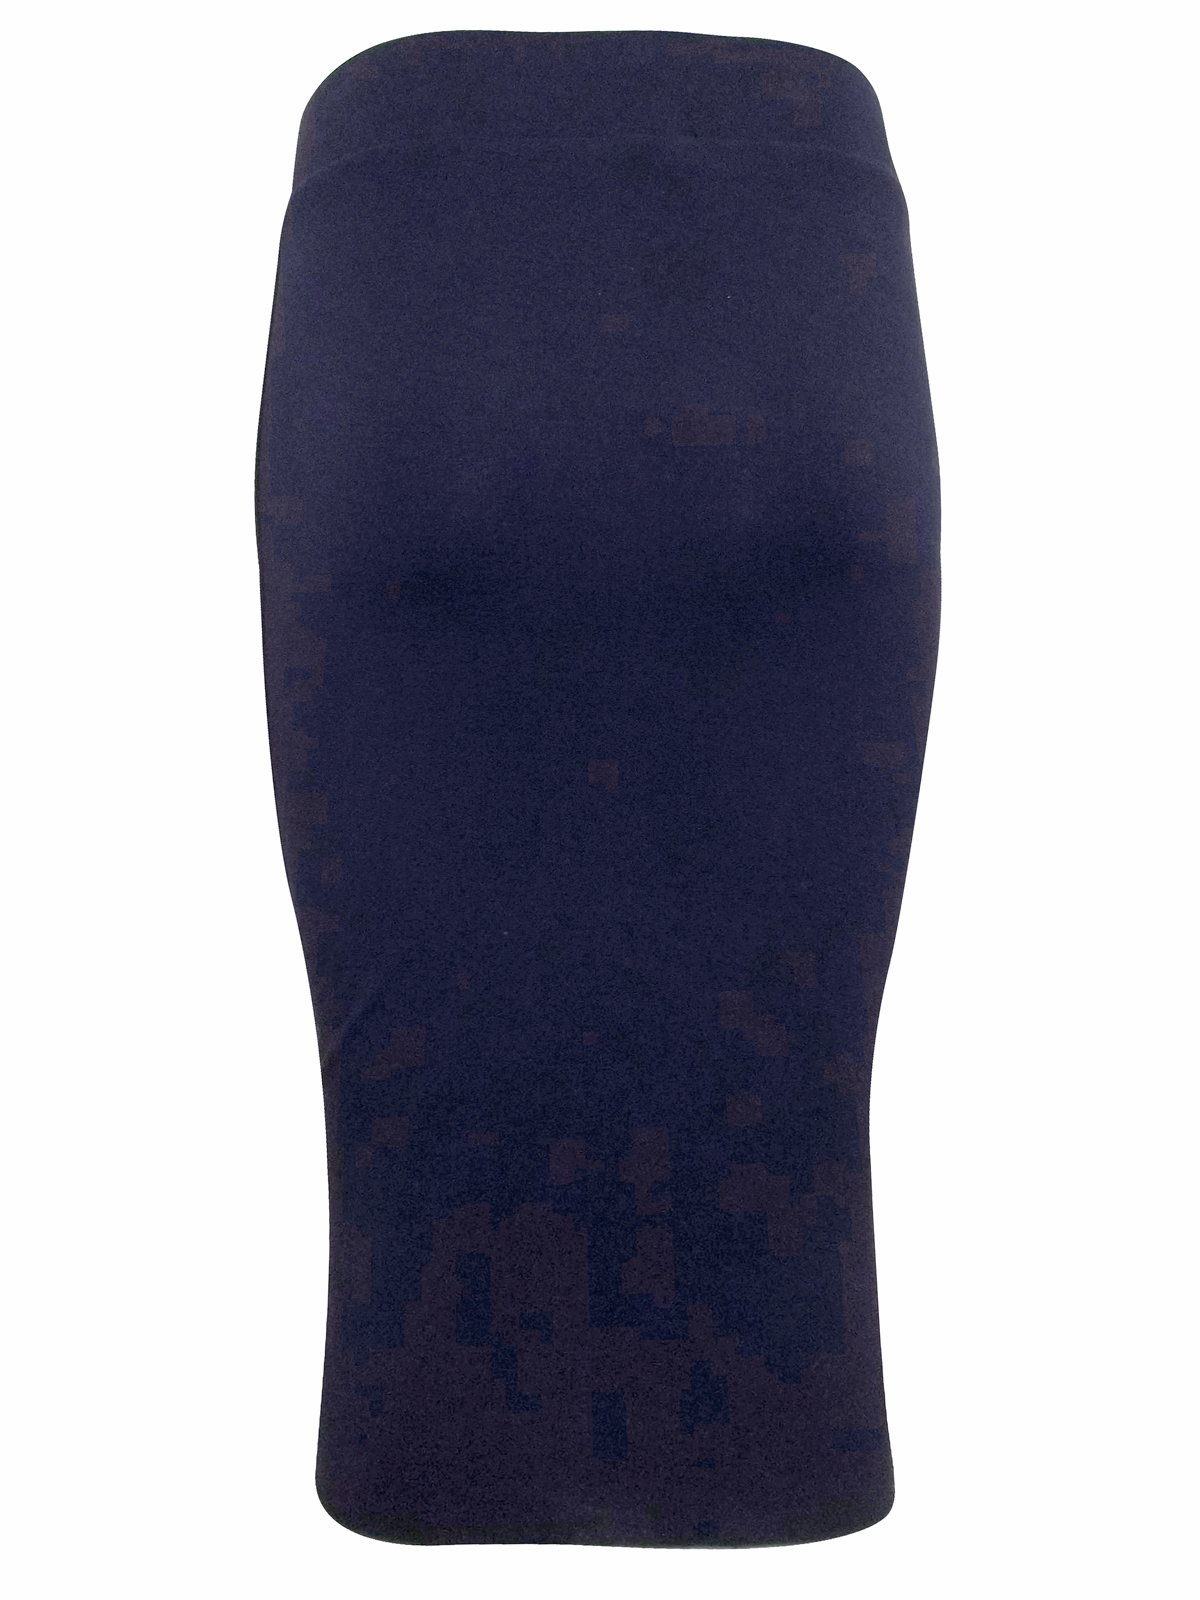 8e88cb022cd Marks and Spencer - - M 5 NAVY Stretch Jersey Pencil Skirt - Size 6 to 18